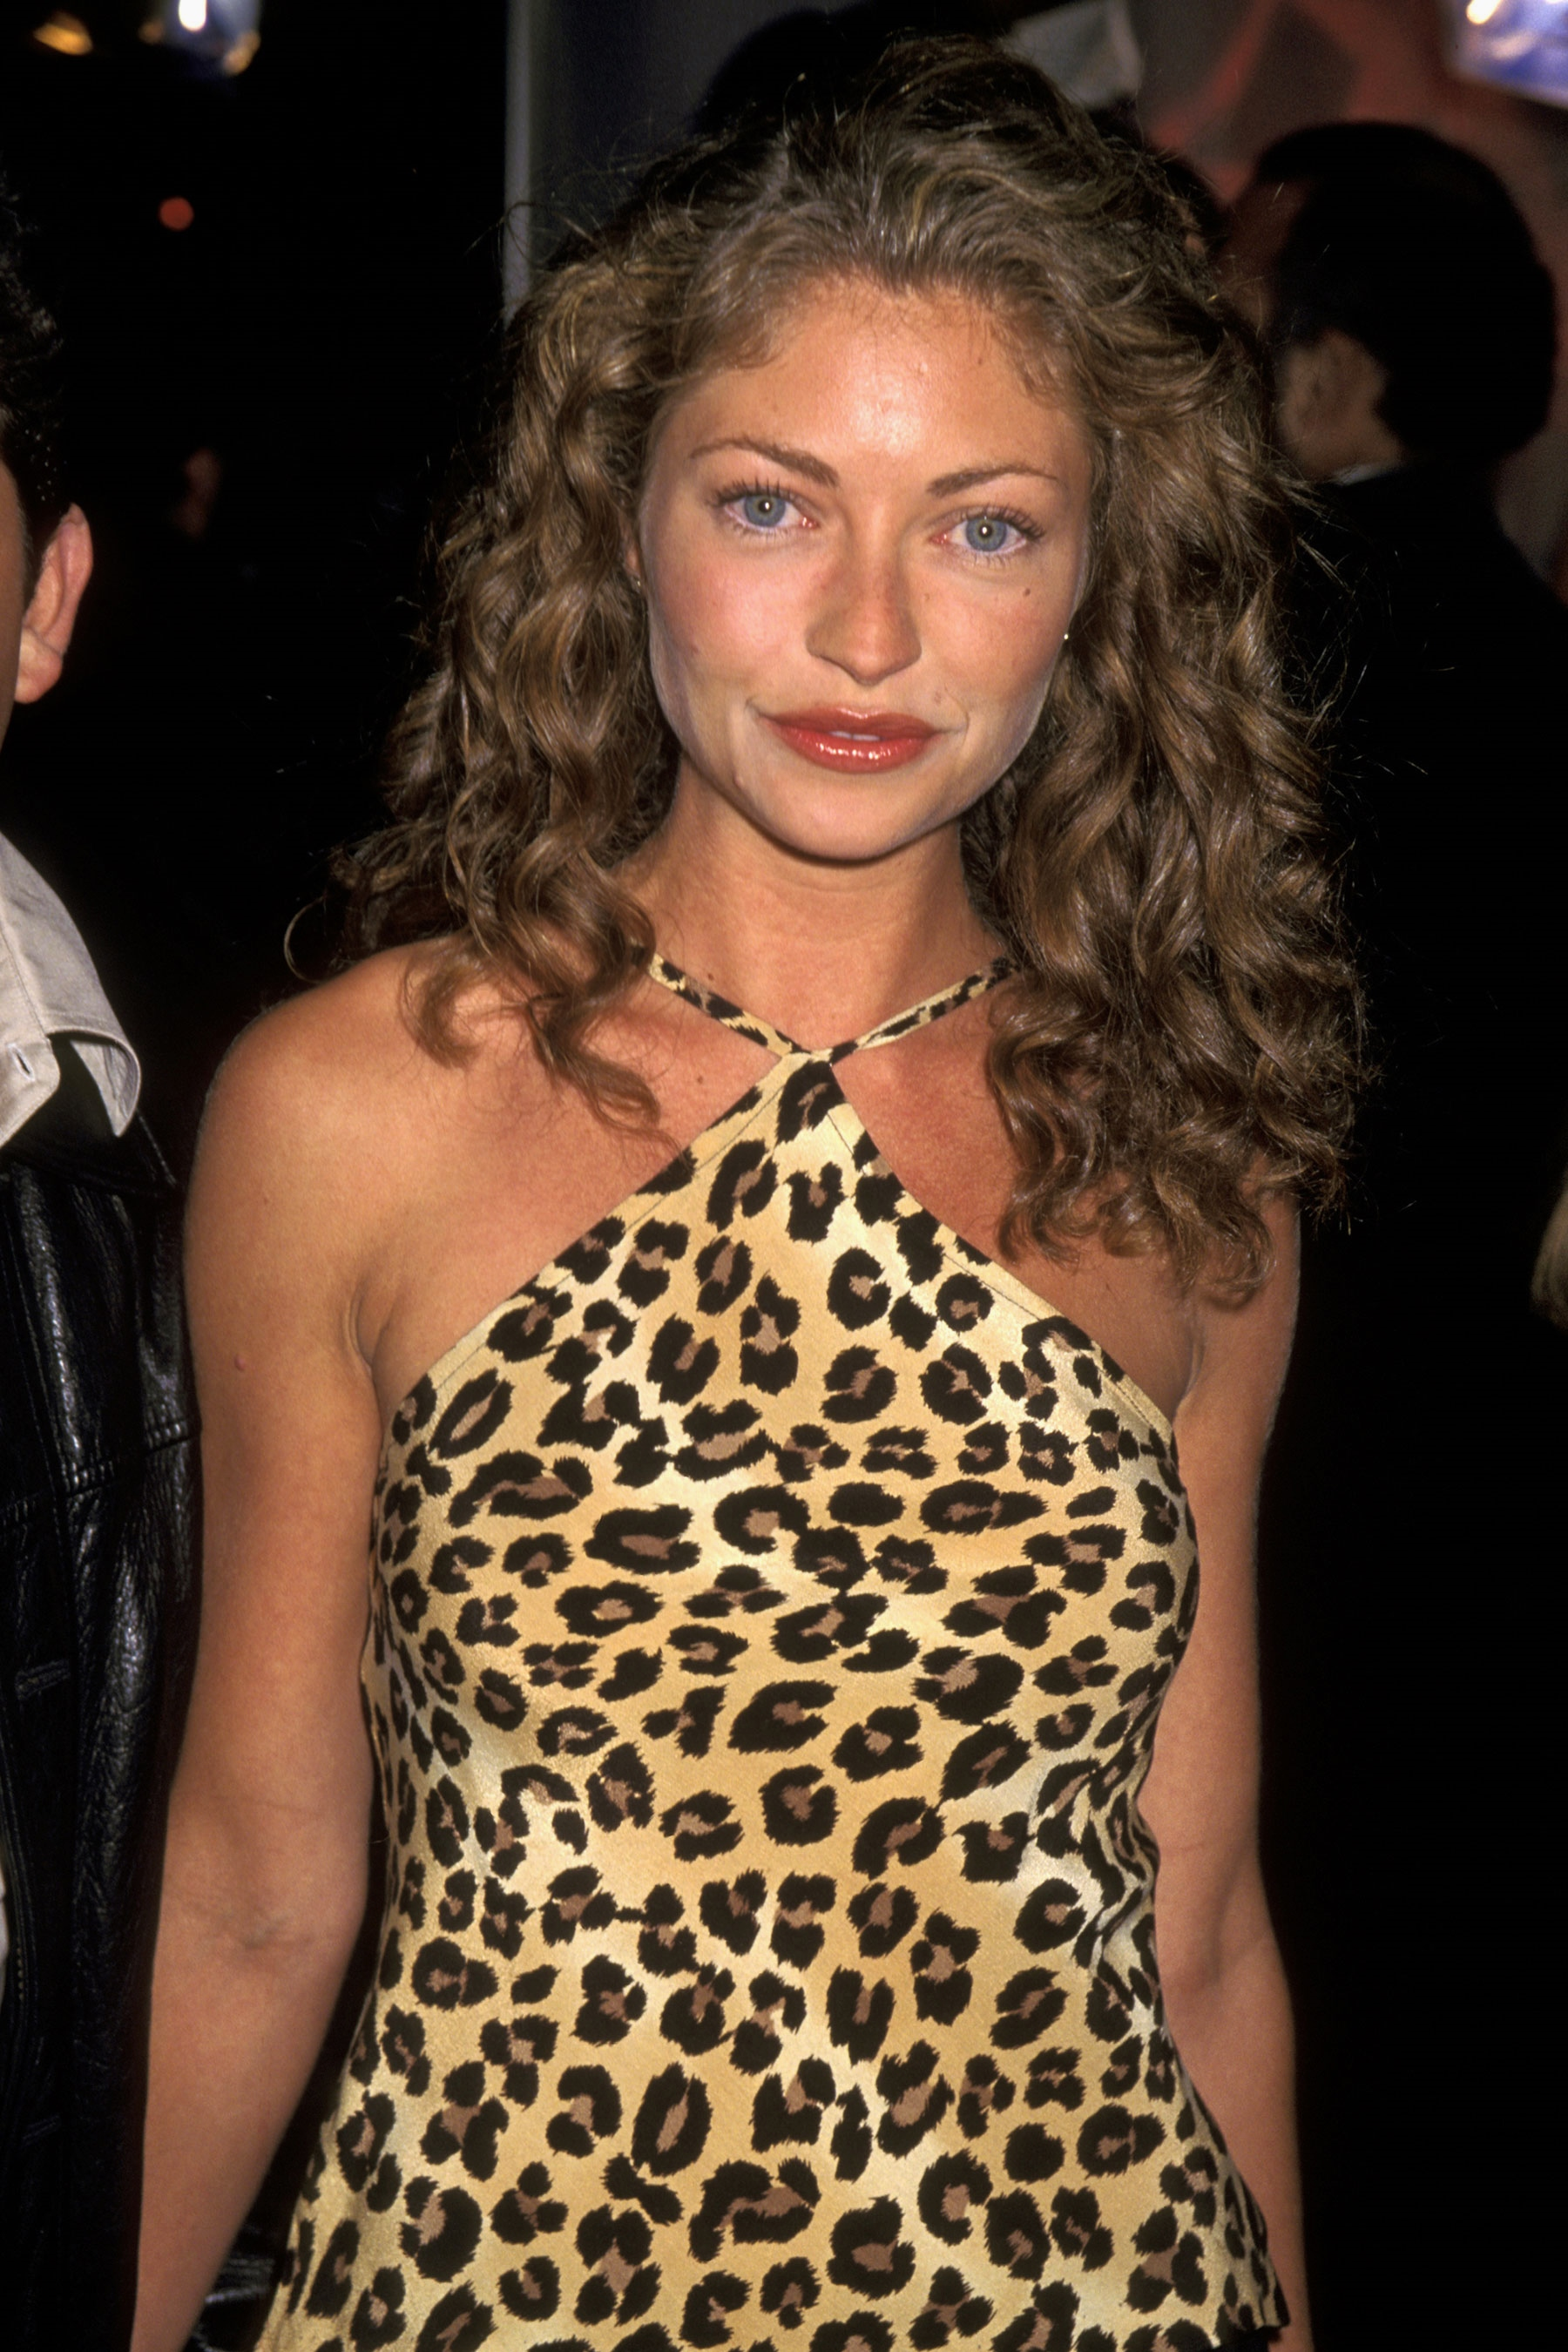 Rebecca Gayheart at an event for Austin Powers: International Man of Mystery (1997)